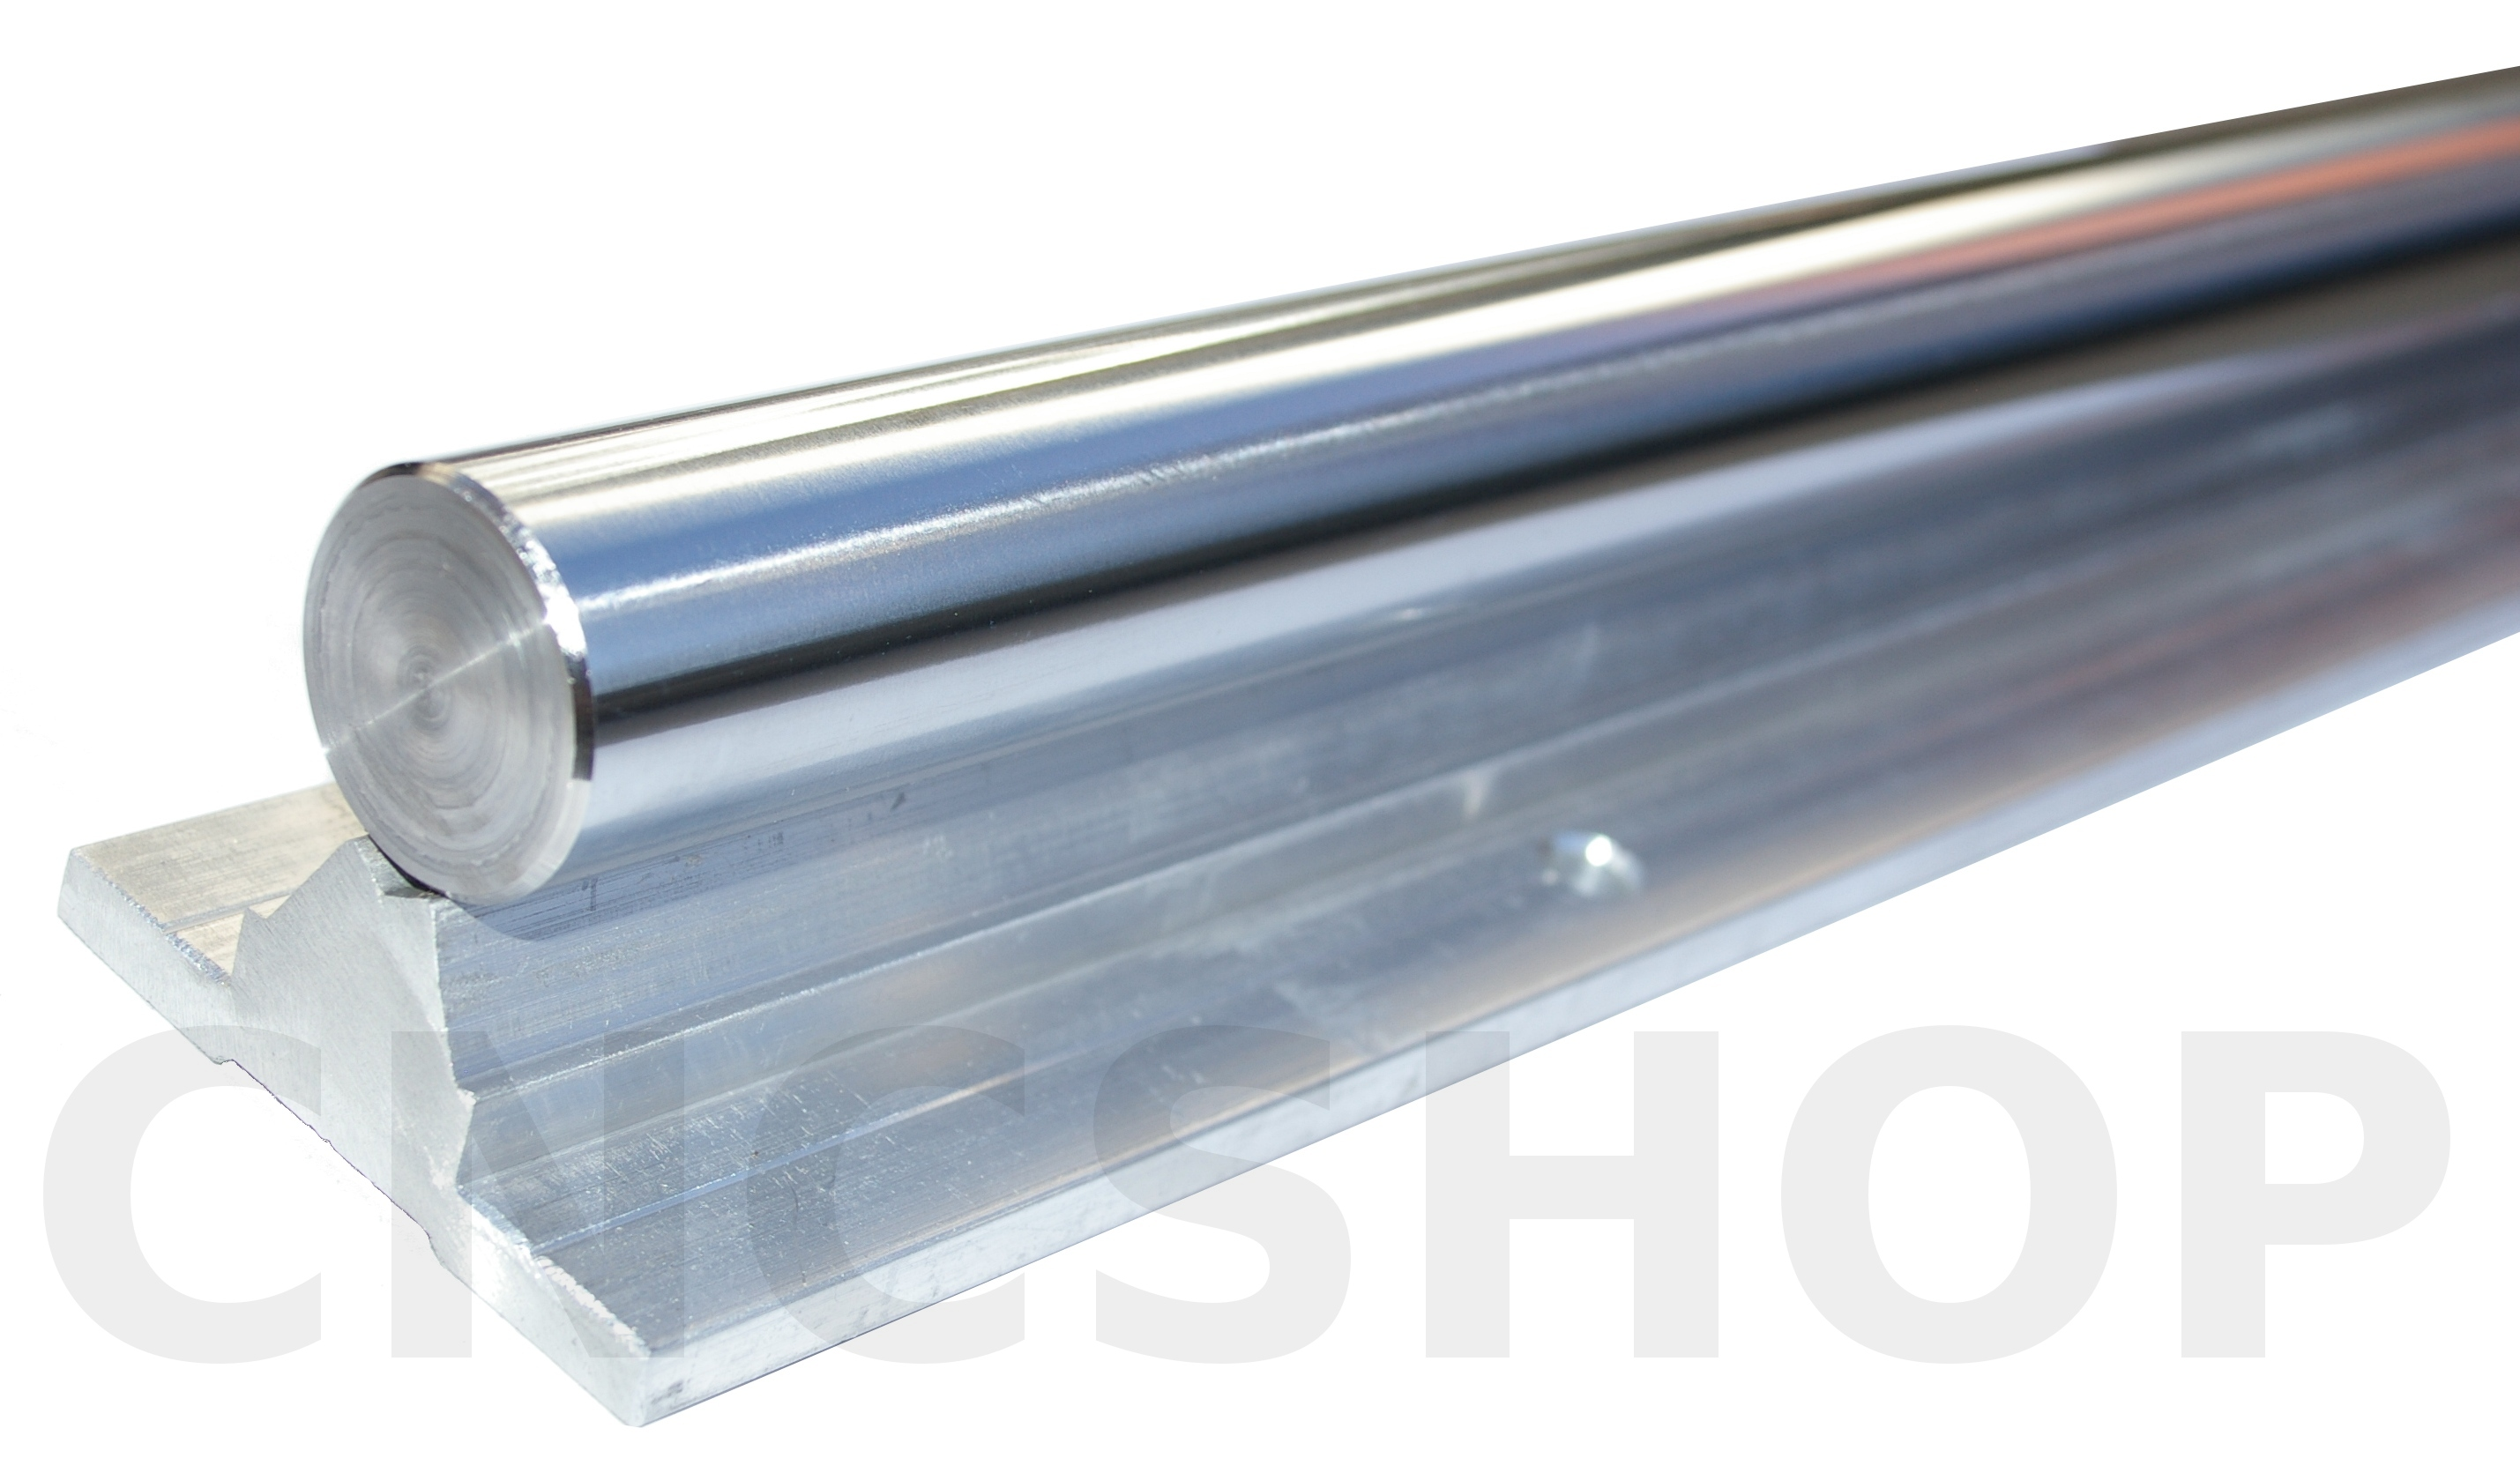 SBR25-1400mm FULLY SUPPORTED LINEAR RAIL